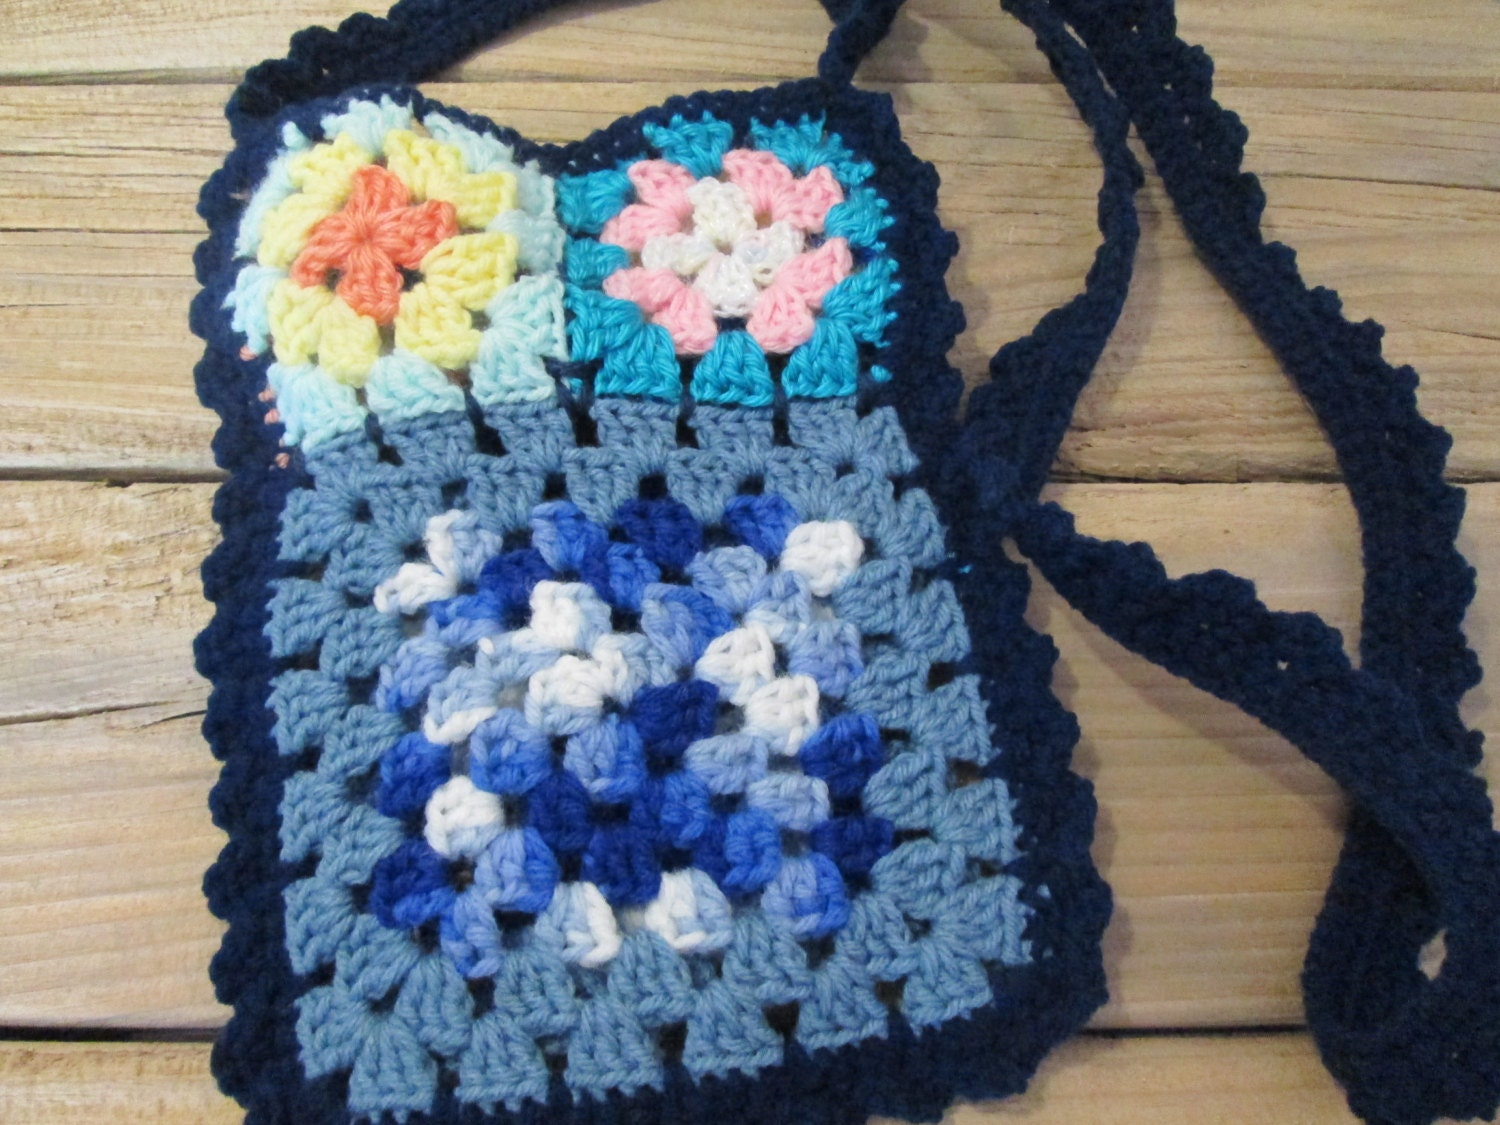 Handmade Crochet Handbags : Handmade Crochet Cross Body Purse Granny by ValentinesDesign